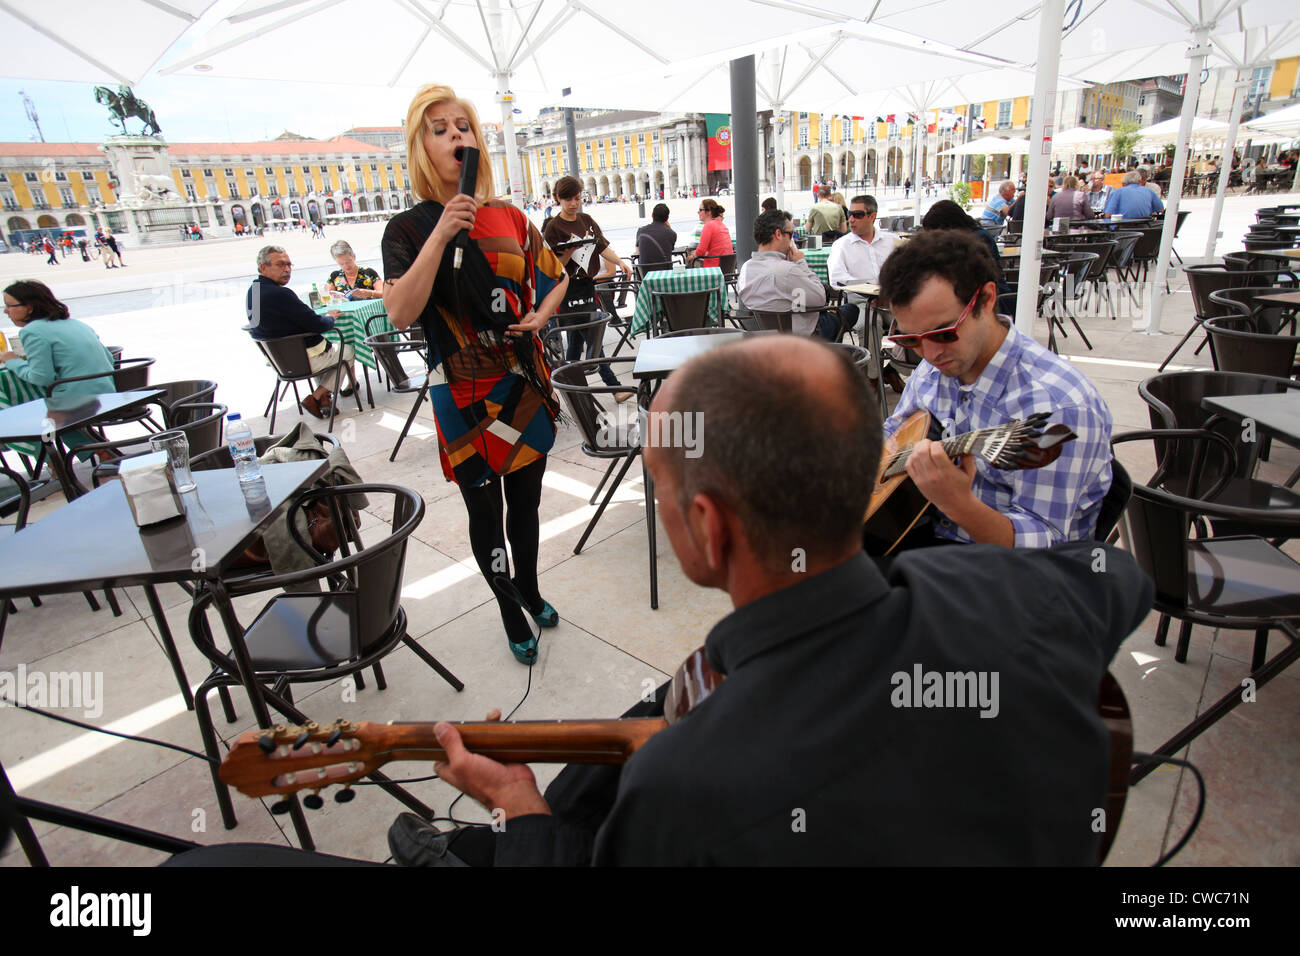 Fado singer accompanied by two guitar players at Terreiro do Paço, Lisbon, Portugal. - Stock Image